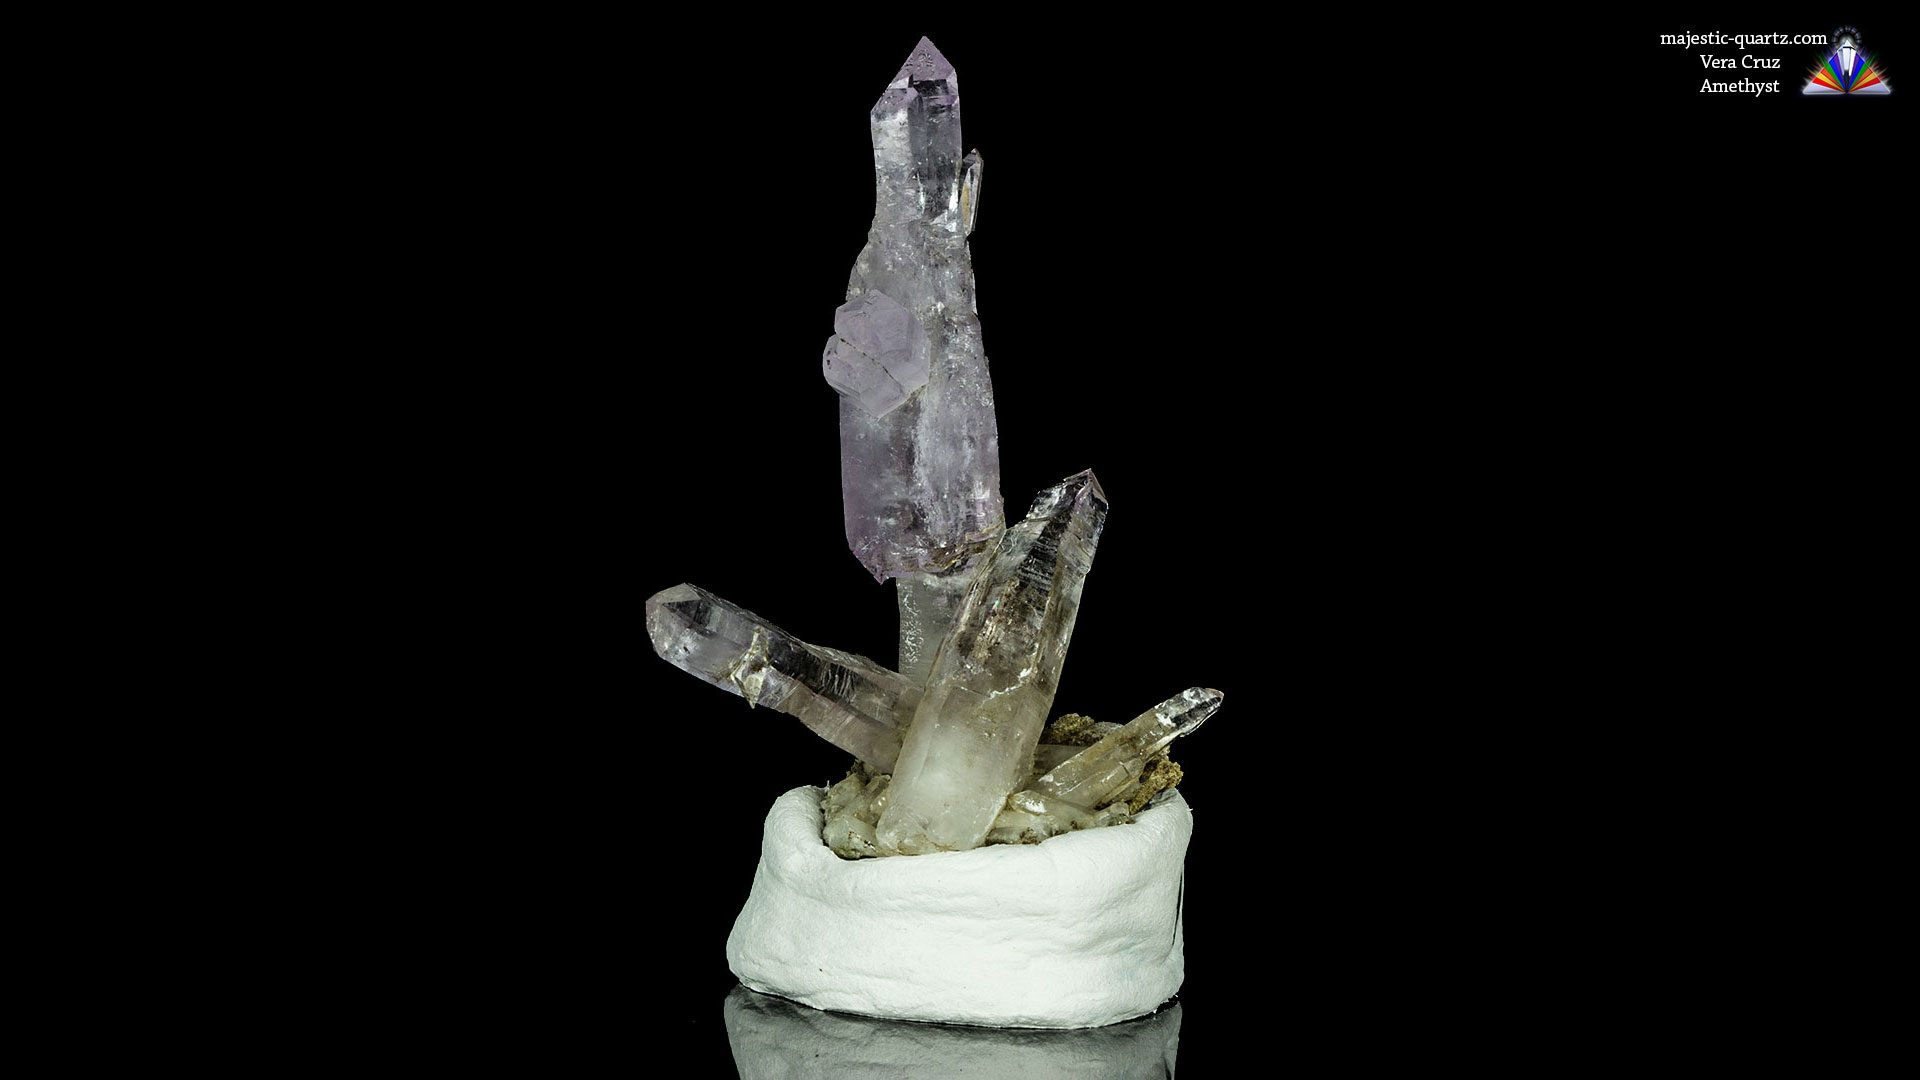 Vera Cruz Amethyst Scepter Cluster - Photograph By Anthony Bradford